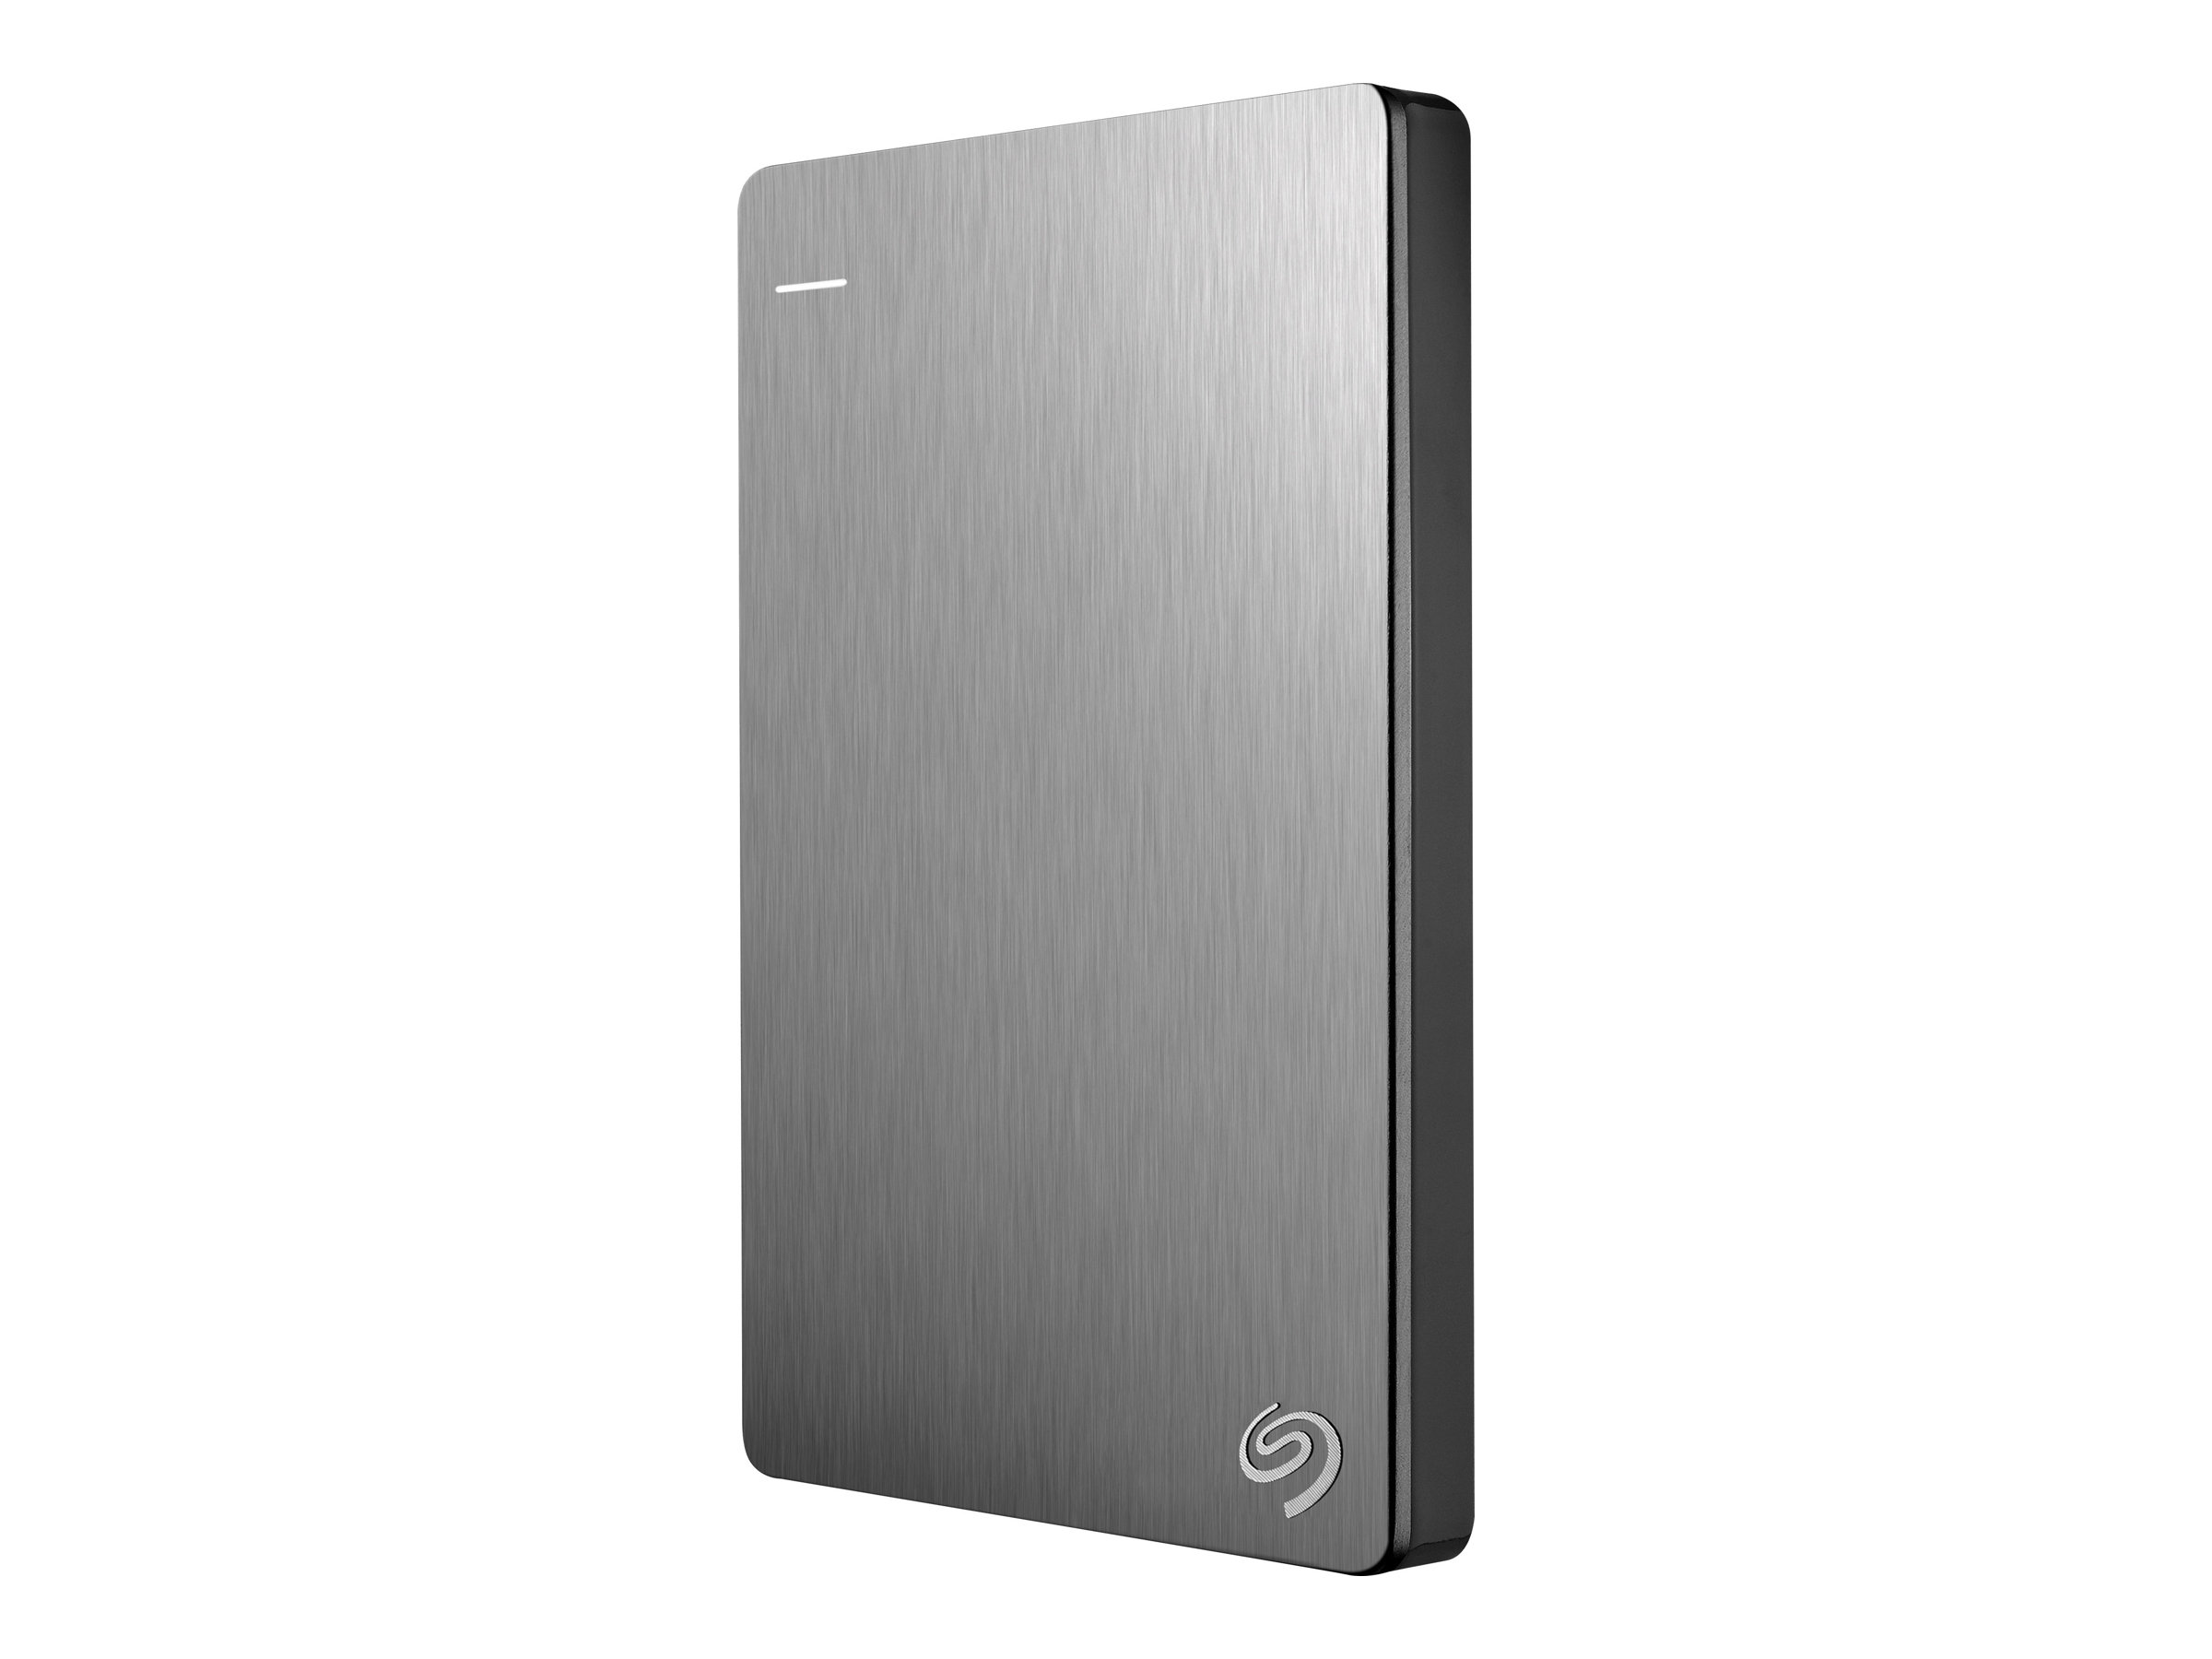 Image for Seagate Backup Plus - Hard Drive - 2 Tb - Usb 3.0 from Circuit City